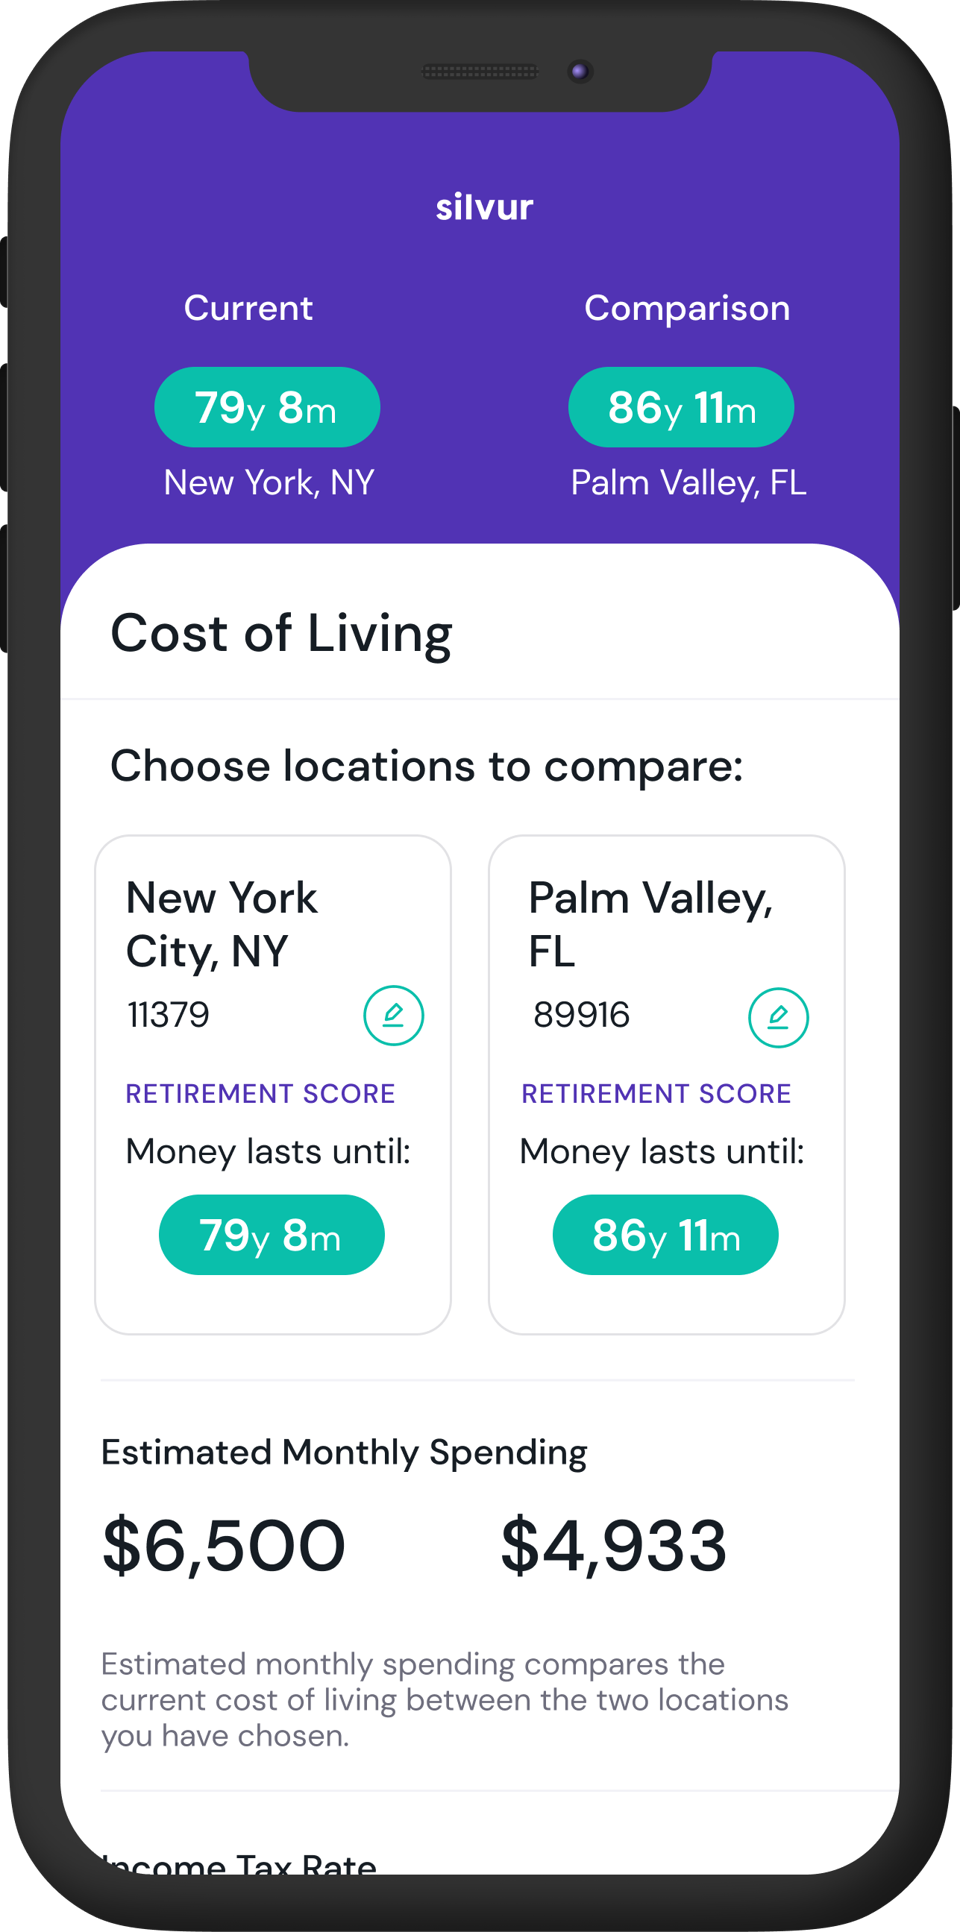 silvur app cost of living image